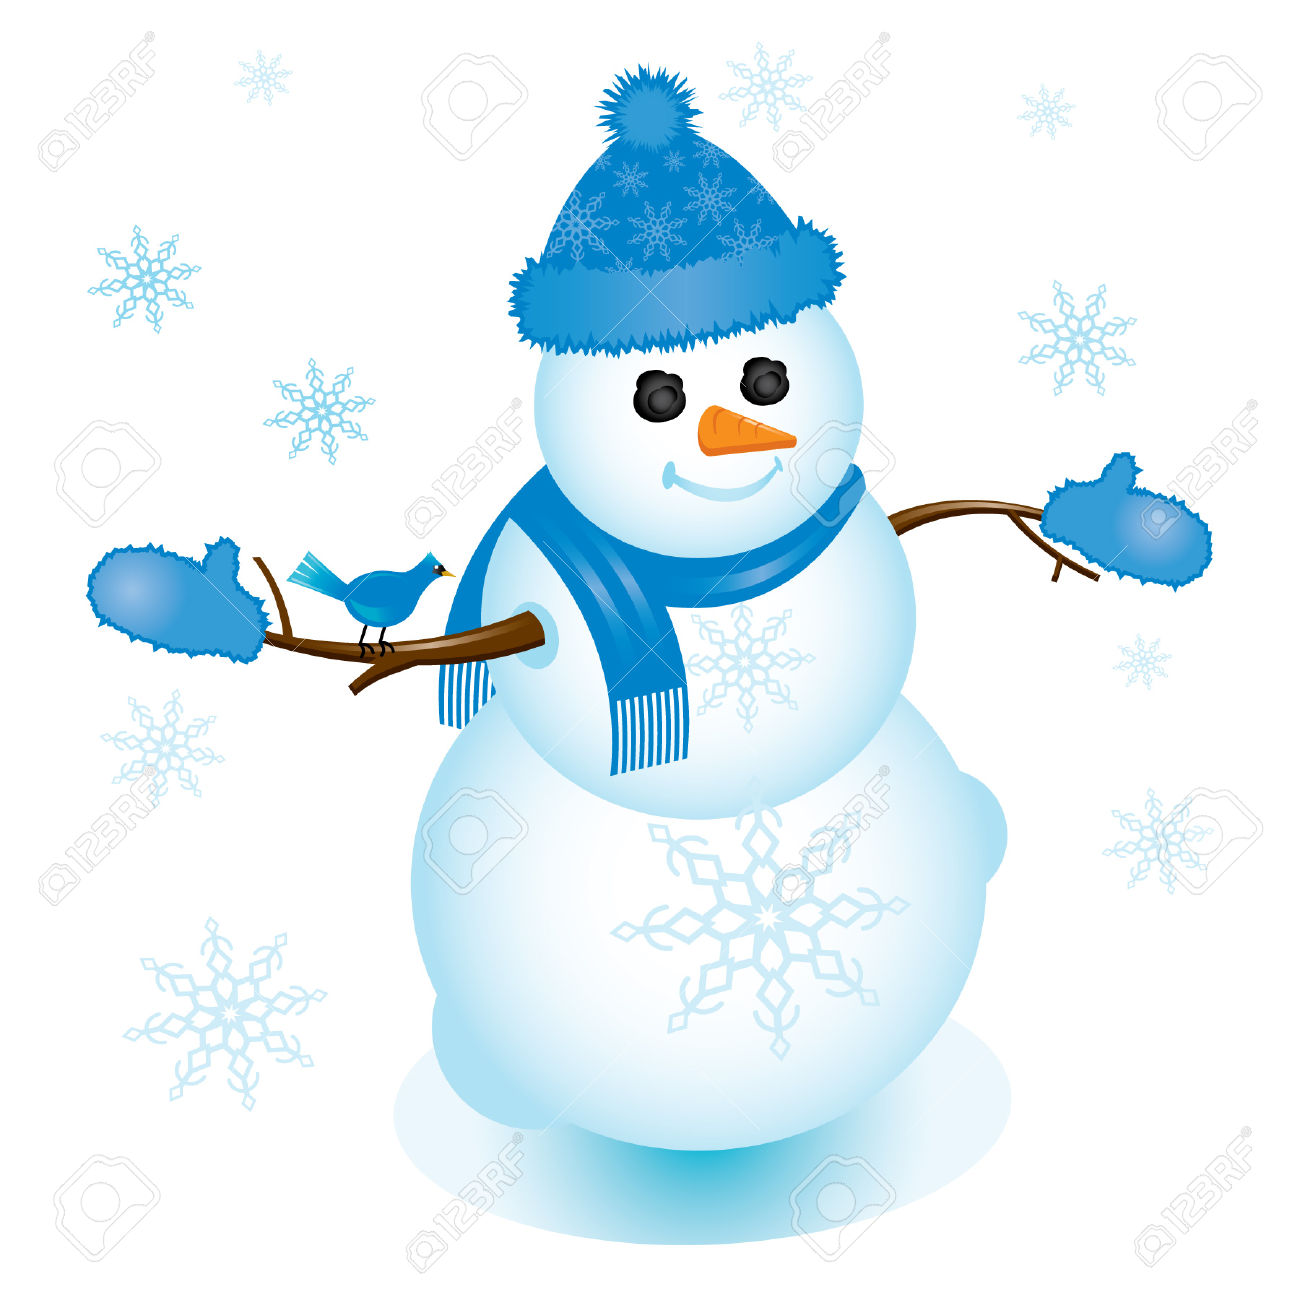 Clipart snowman with blue scarf and no hat.